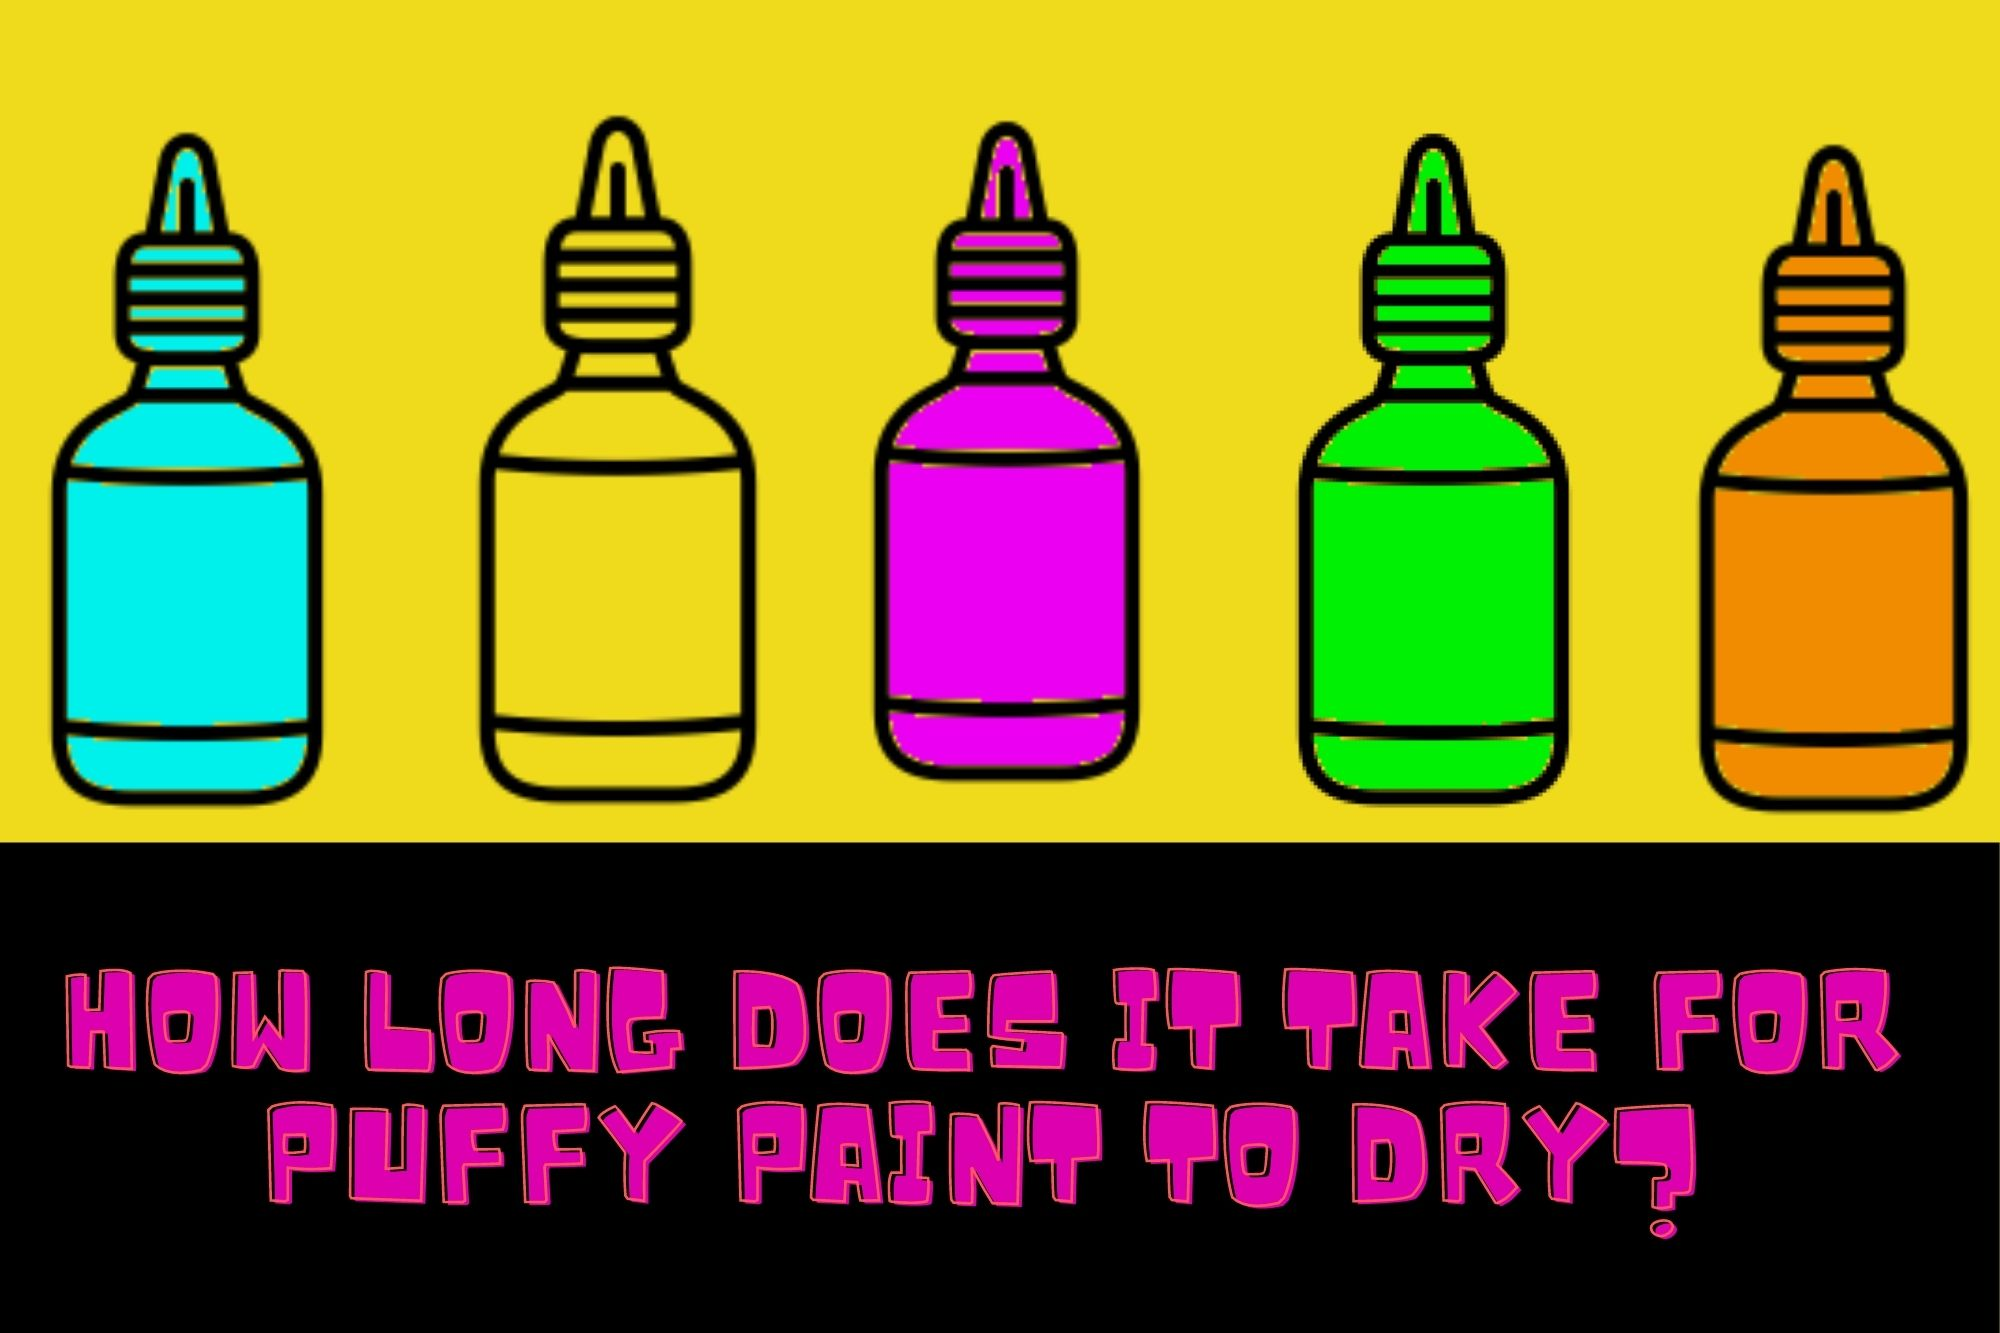 How Long Does It Take For Puffy Paint To Dry?